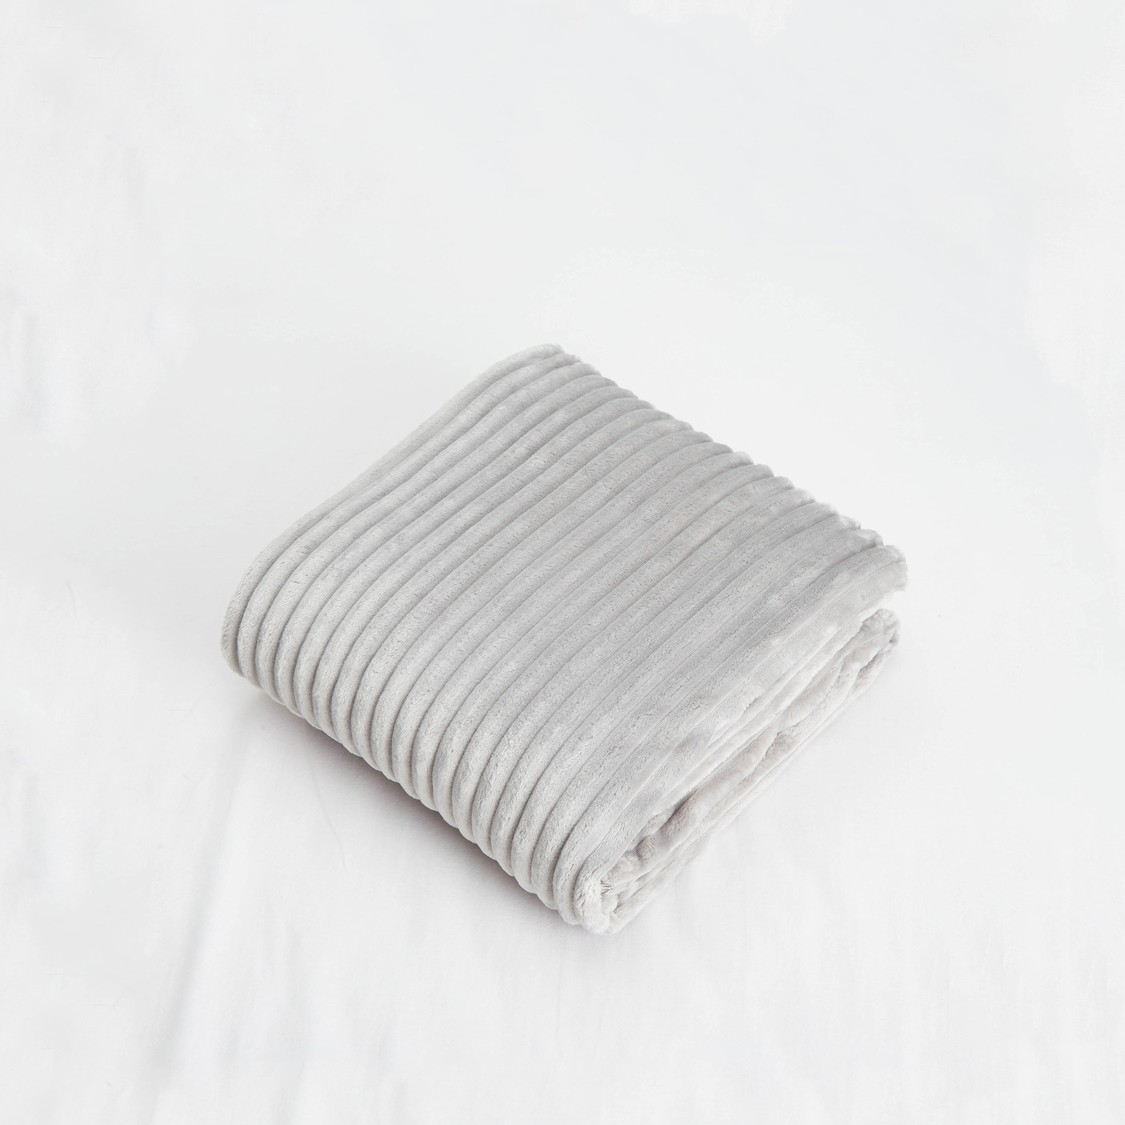 Quilted Rectangular King Blanket - 220x200 cms